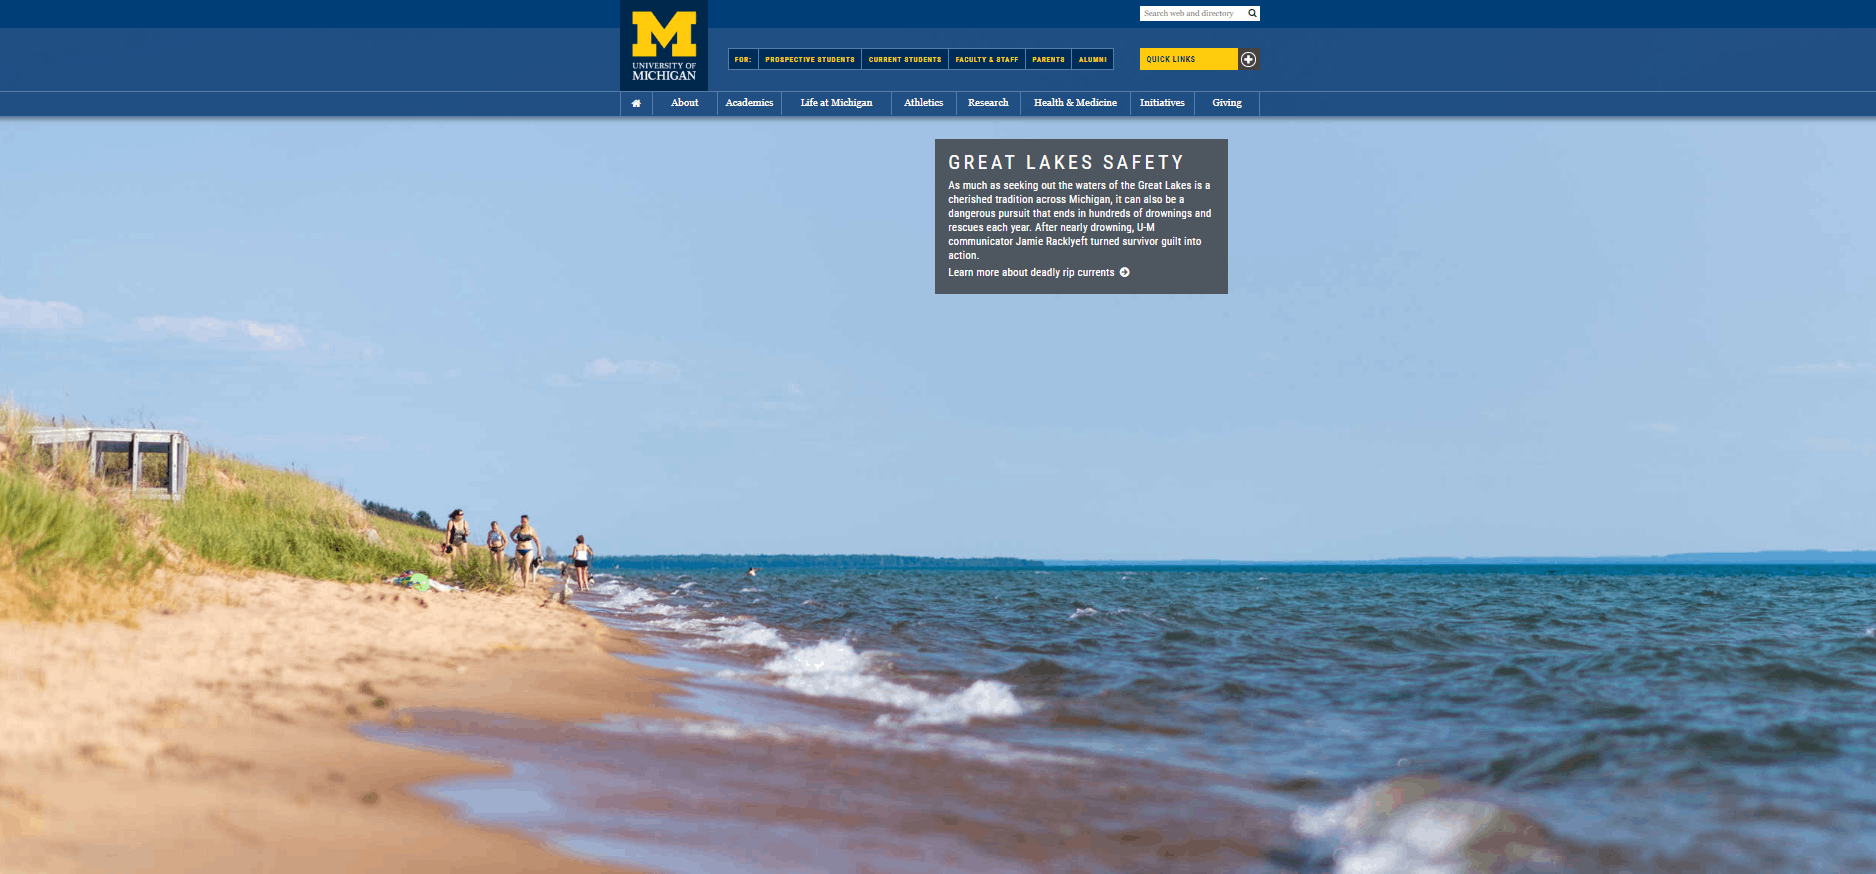 University of Michigan third place winner Convince & Convert university website study